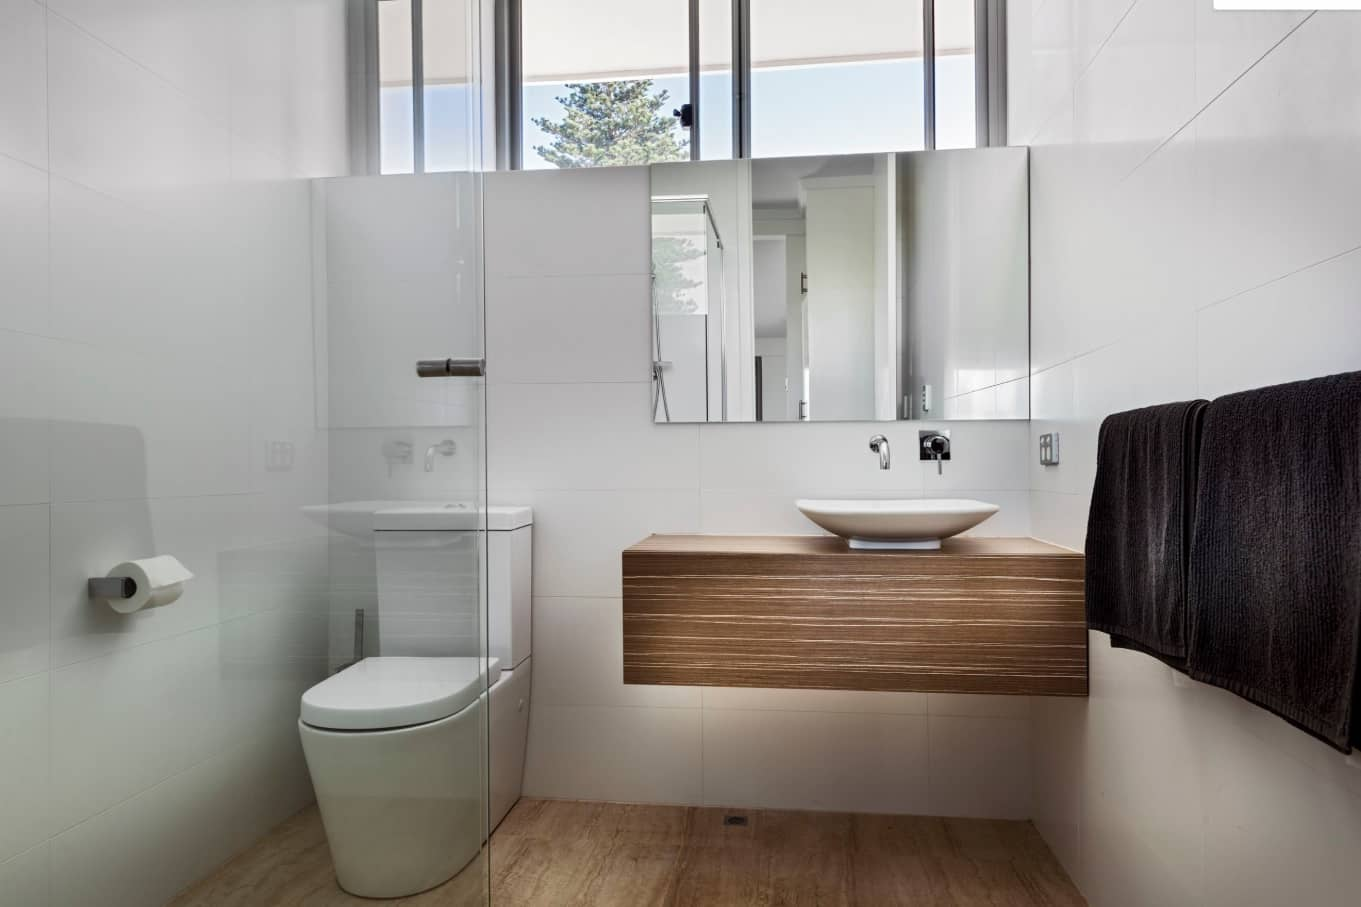 The Bathroom Trends for 2020. Floating noble wooden vanity